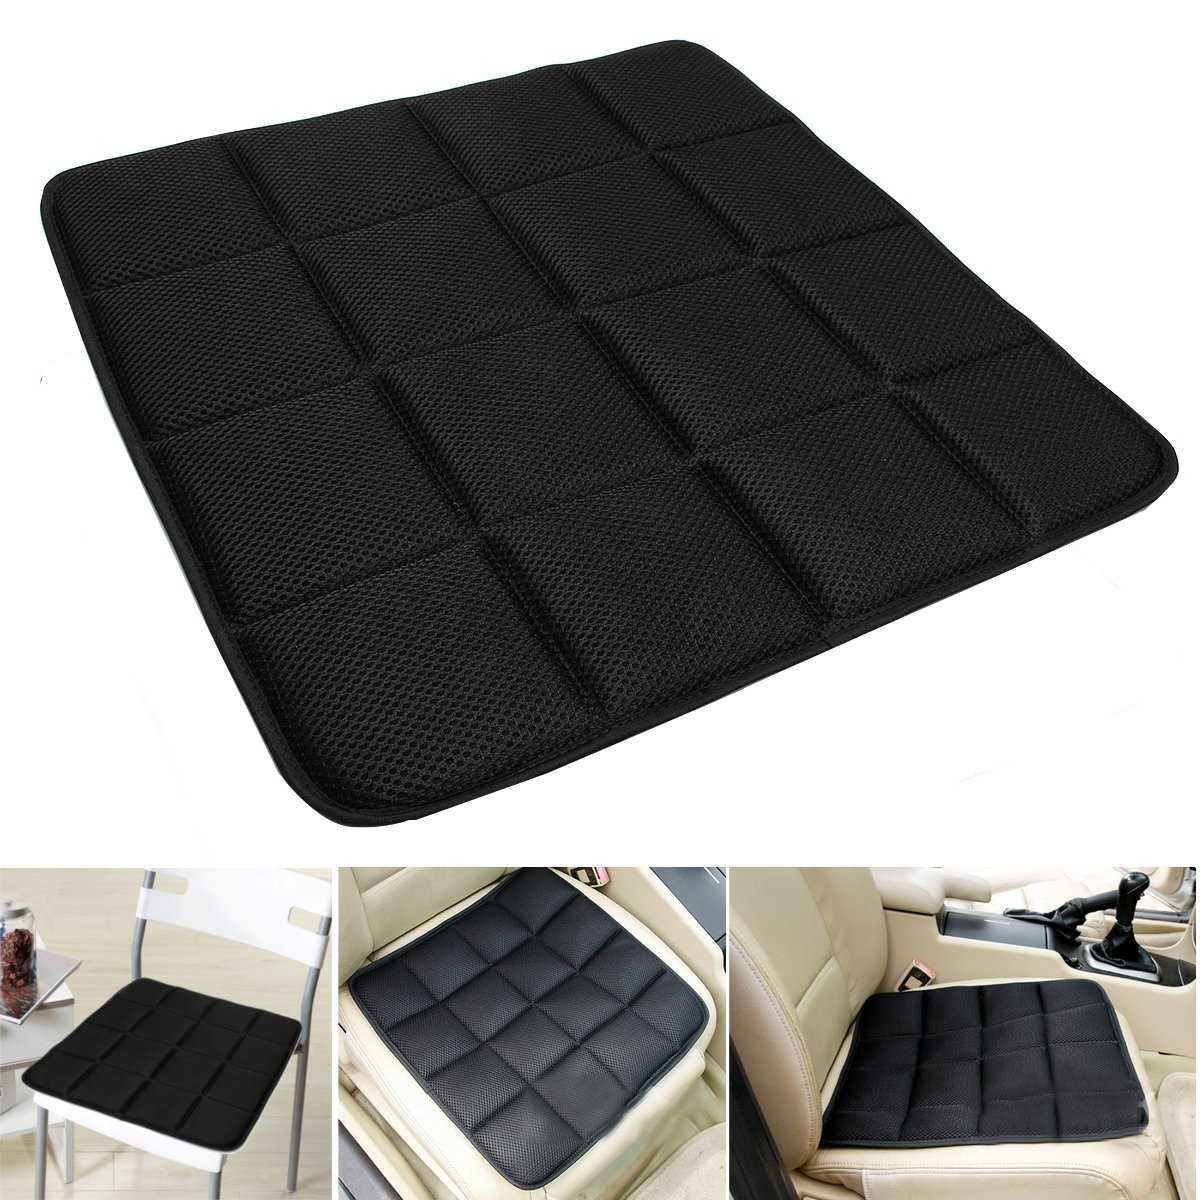 bamboo charcoal breathable seat cushion cover pad mat for car office chair black ebay. Black Bedroom Furniture Sets. Home Design Ideas